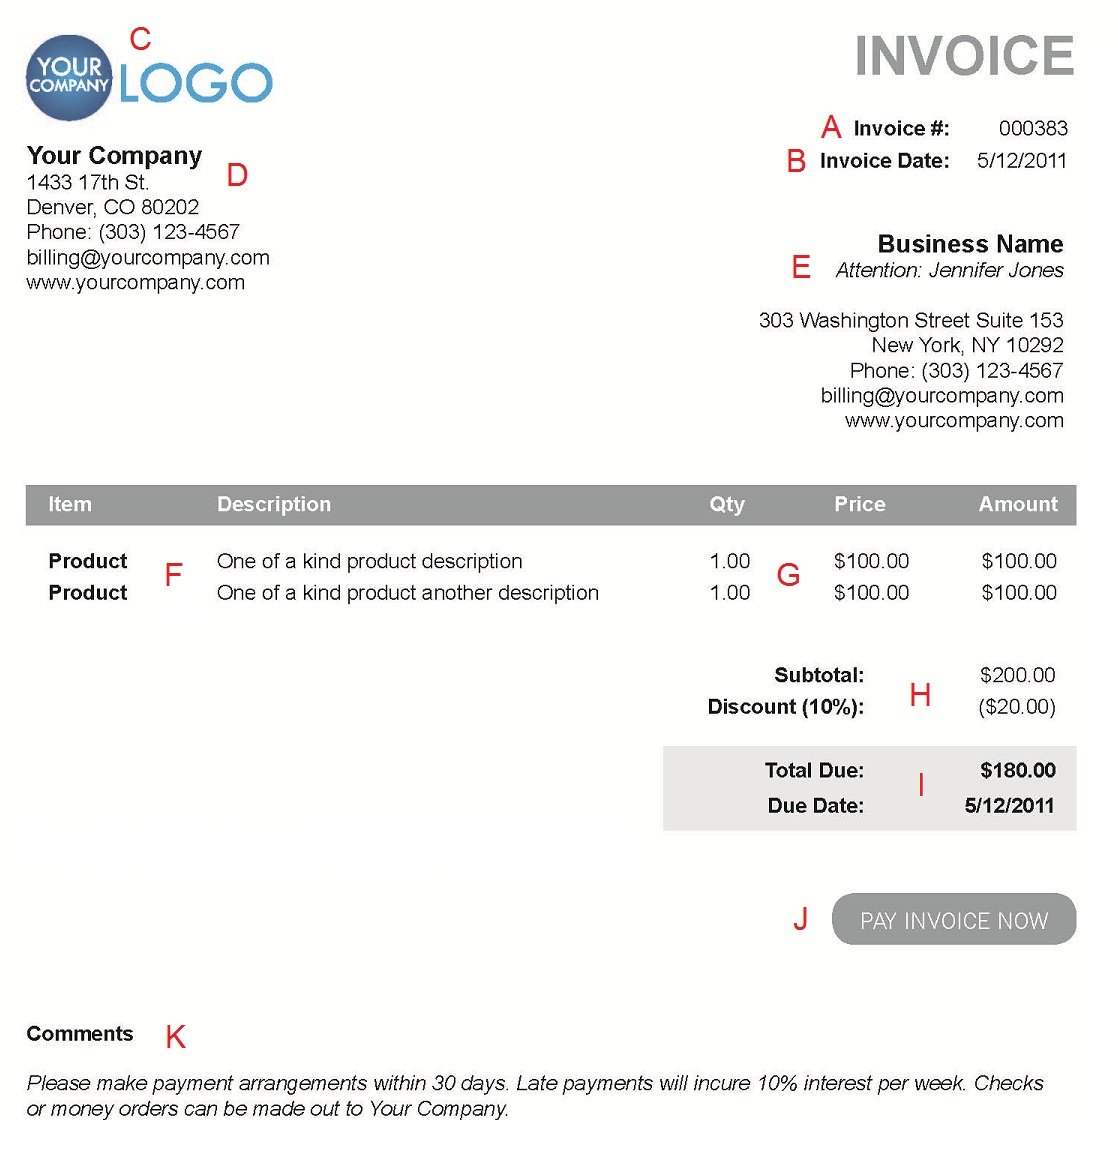 Coachoutletonlineplusus  Sweet The  Different Sections Of An Electronic Payment Invoice With Entrancing A  With Cool Forwarders Certificate Of Receipt Also Excel Sales Receipt Template In Addition Format For Receipt Of Payment And Blank Receipts To Print As Well As Target Gift Receipt Online Additionally House Rent Payment Receipt Format From Paysimplecom With Coachoutletonlineplusus  Entrancing The  Different Sections Of An Electronic Payment Invoice With Cool A  And Sweet Forwarders Certificate Of Receipt Also Excel Sales Receipt Template In Addition Format For Receipt Of Payment From Paysimplecom